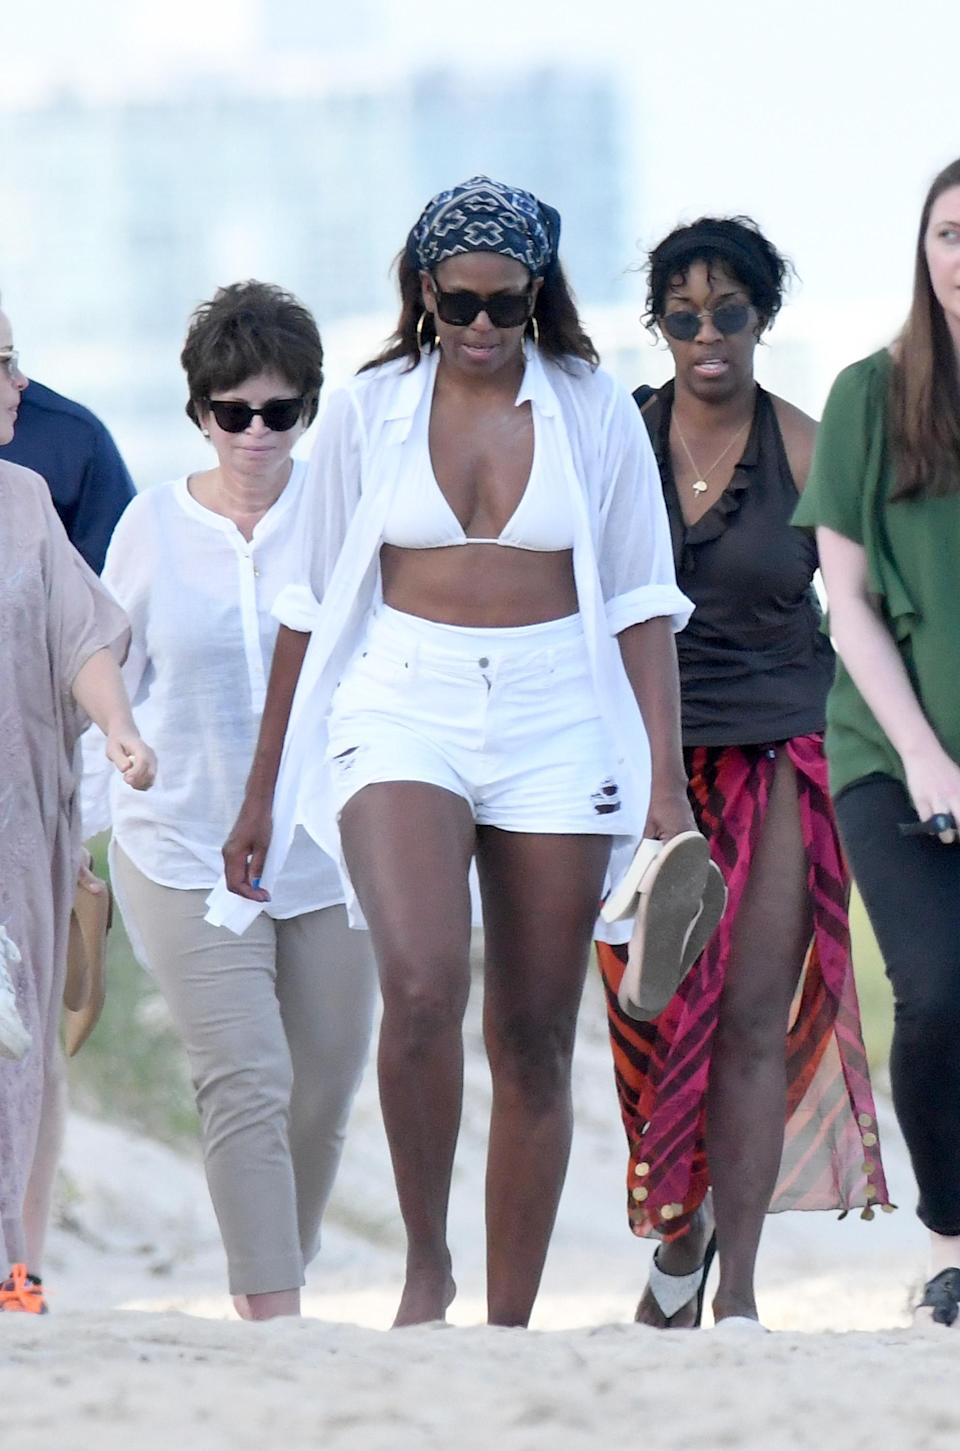 Michelle Obama is kicking back in Miami. (Photo: Splash News)